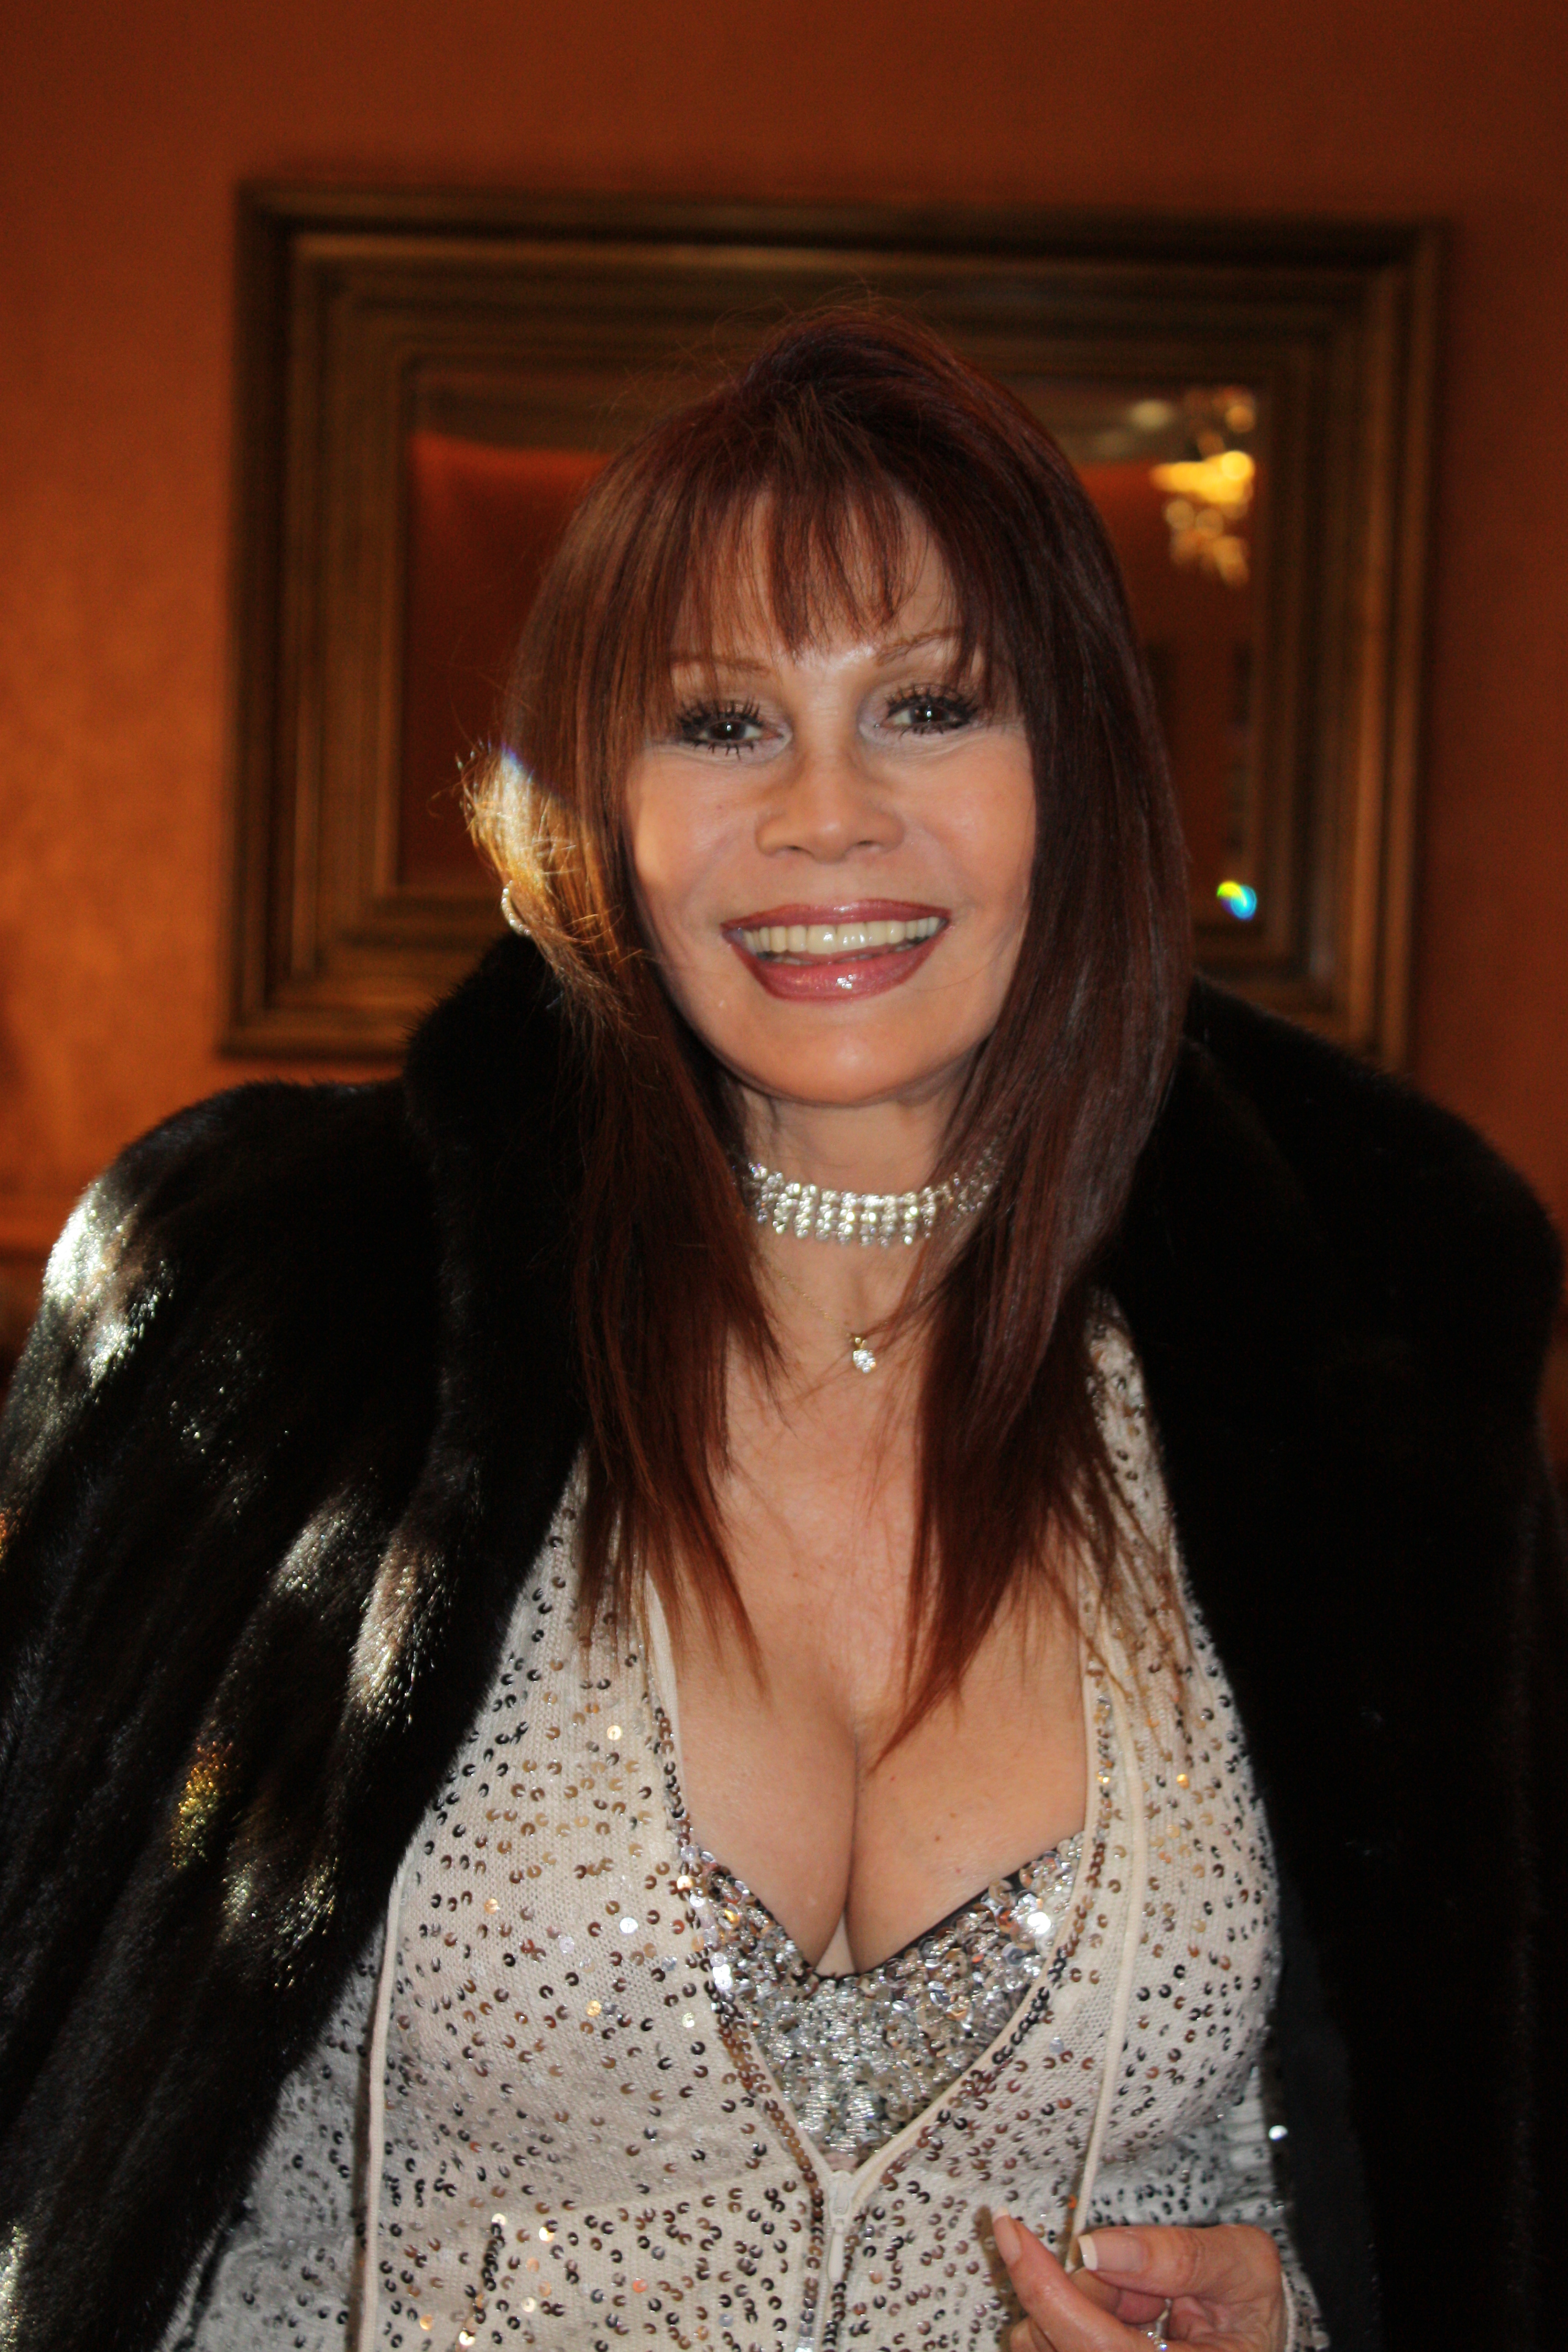 What Does BarBara Luna Look Like Now